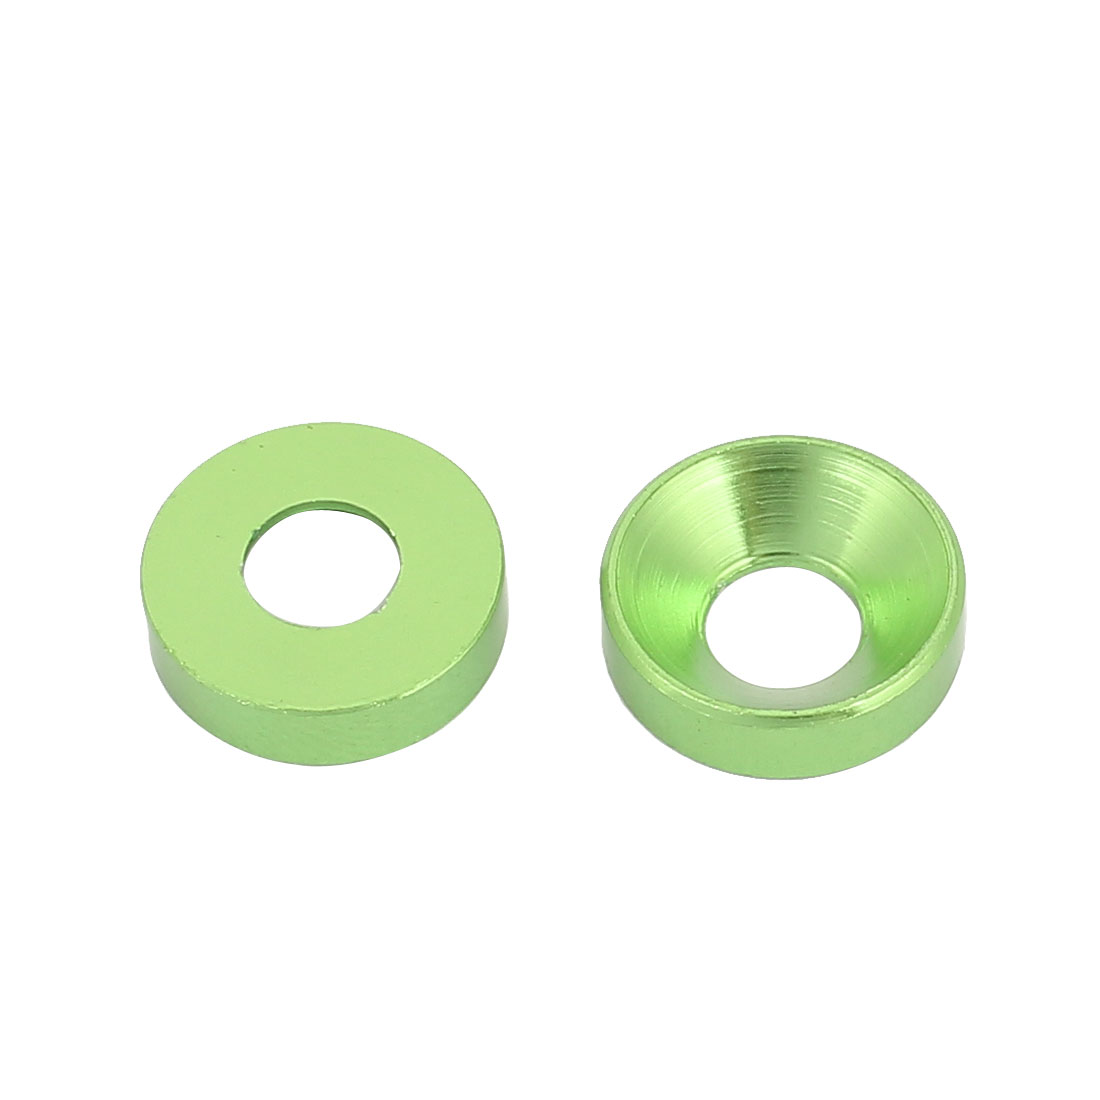 M5 Aluminum Alloy Green Countersunk Head Screw Spacer For RC DIY 2 Pcs